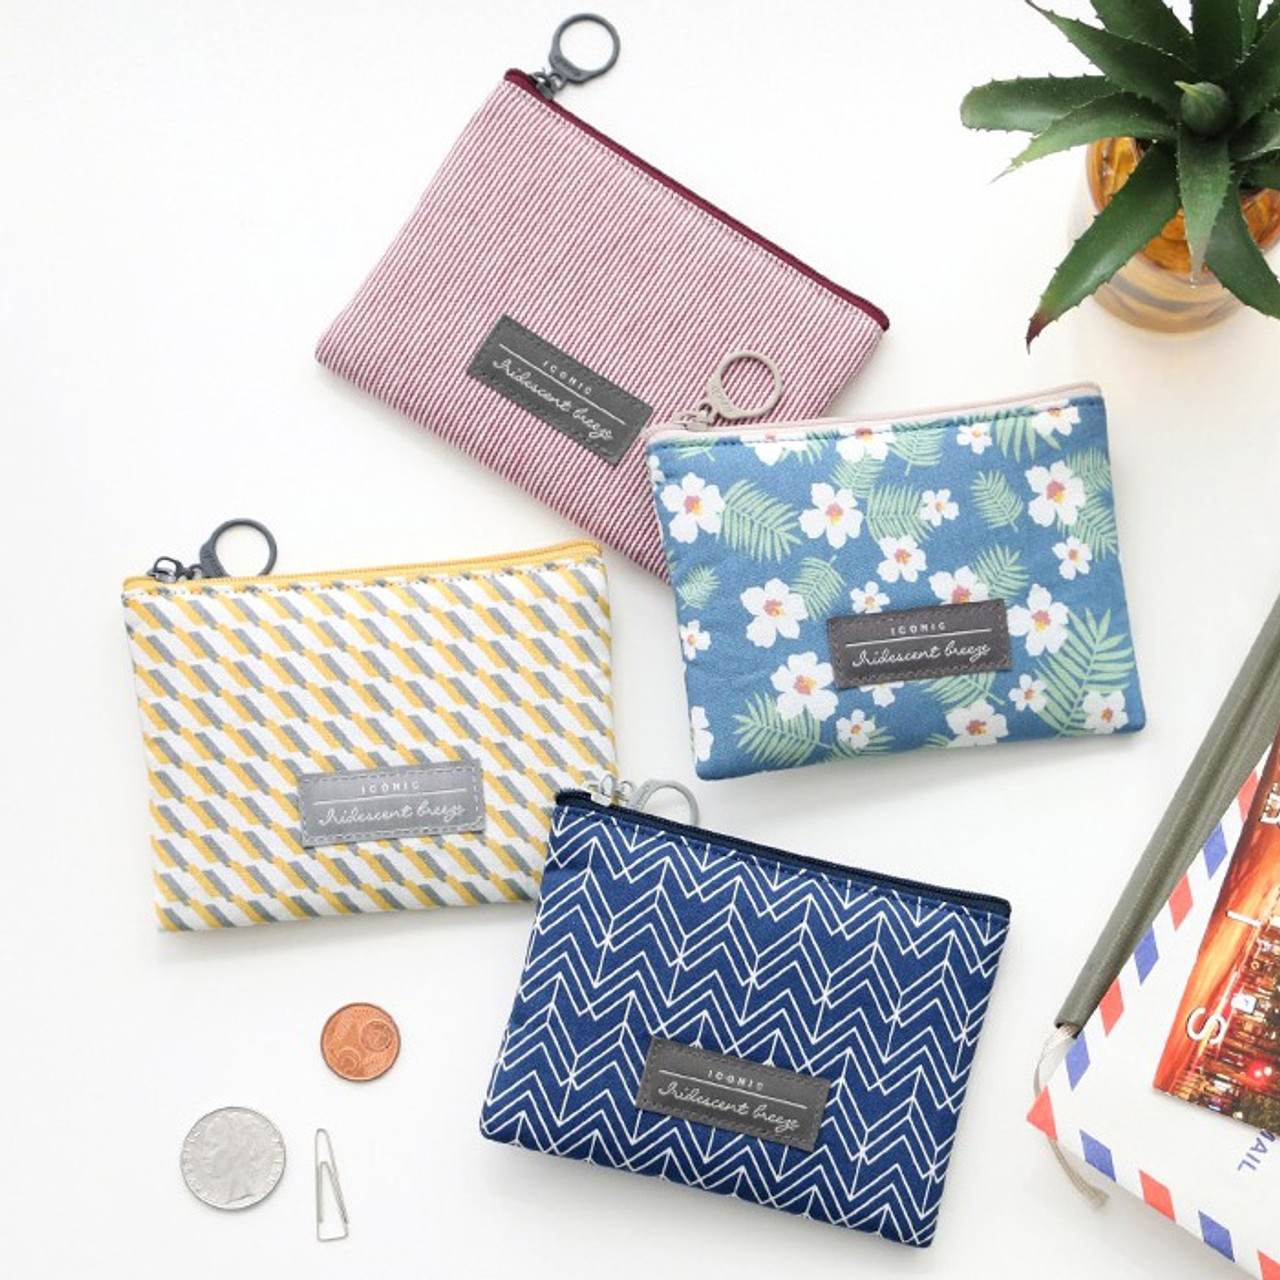 Iconic Comely pattern mini flat zipper pouch - fallindesign.com 1bb3cff7d48a6